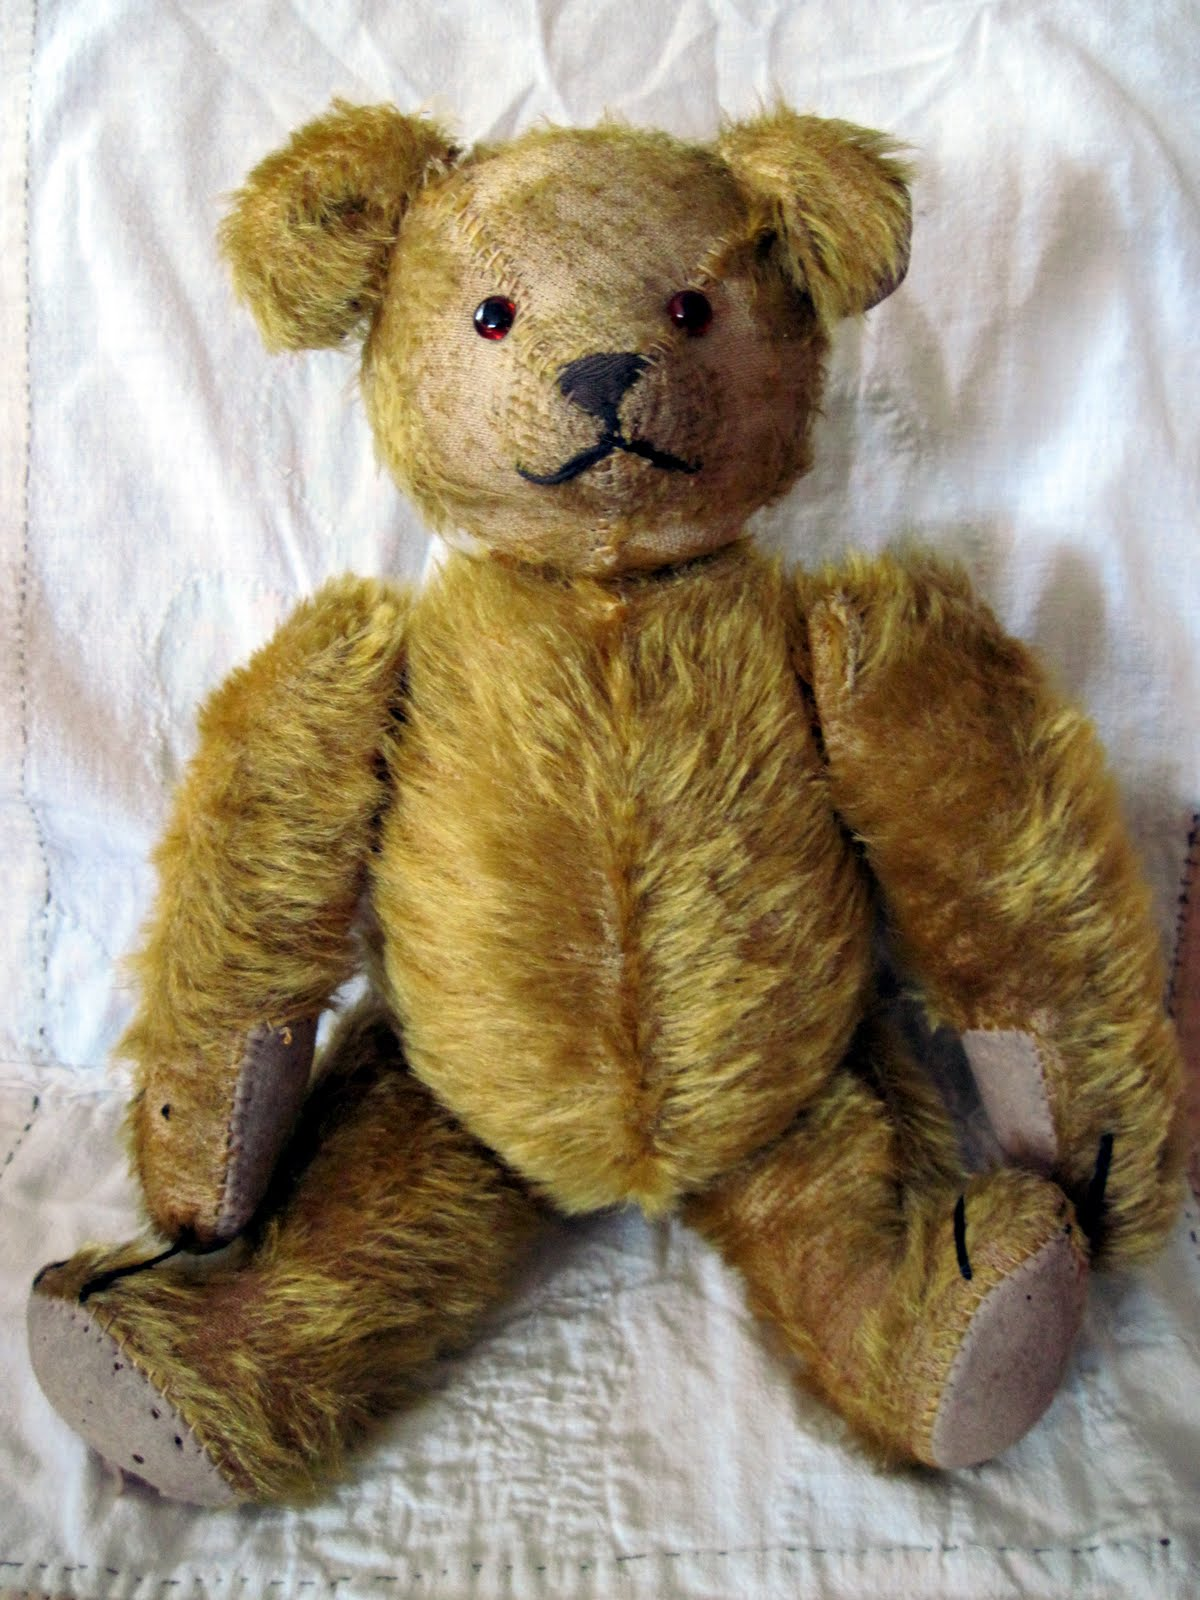 Tracy's Toys (and Some Other Stuff): Odd Antique Teddy Bear